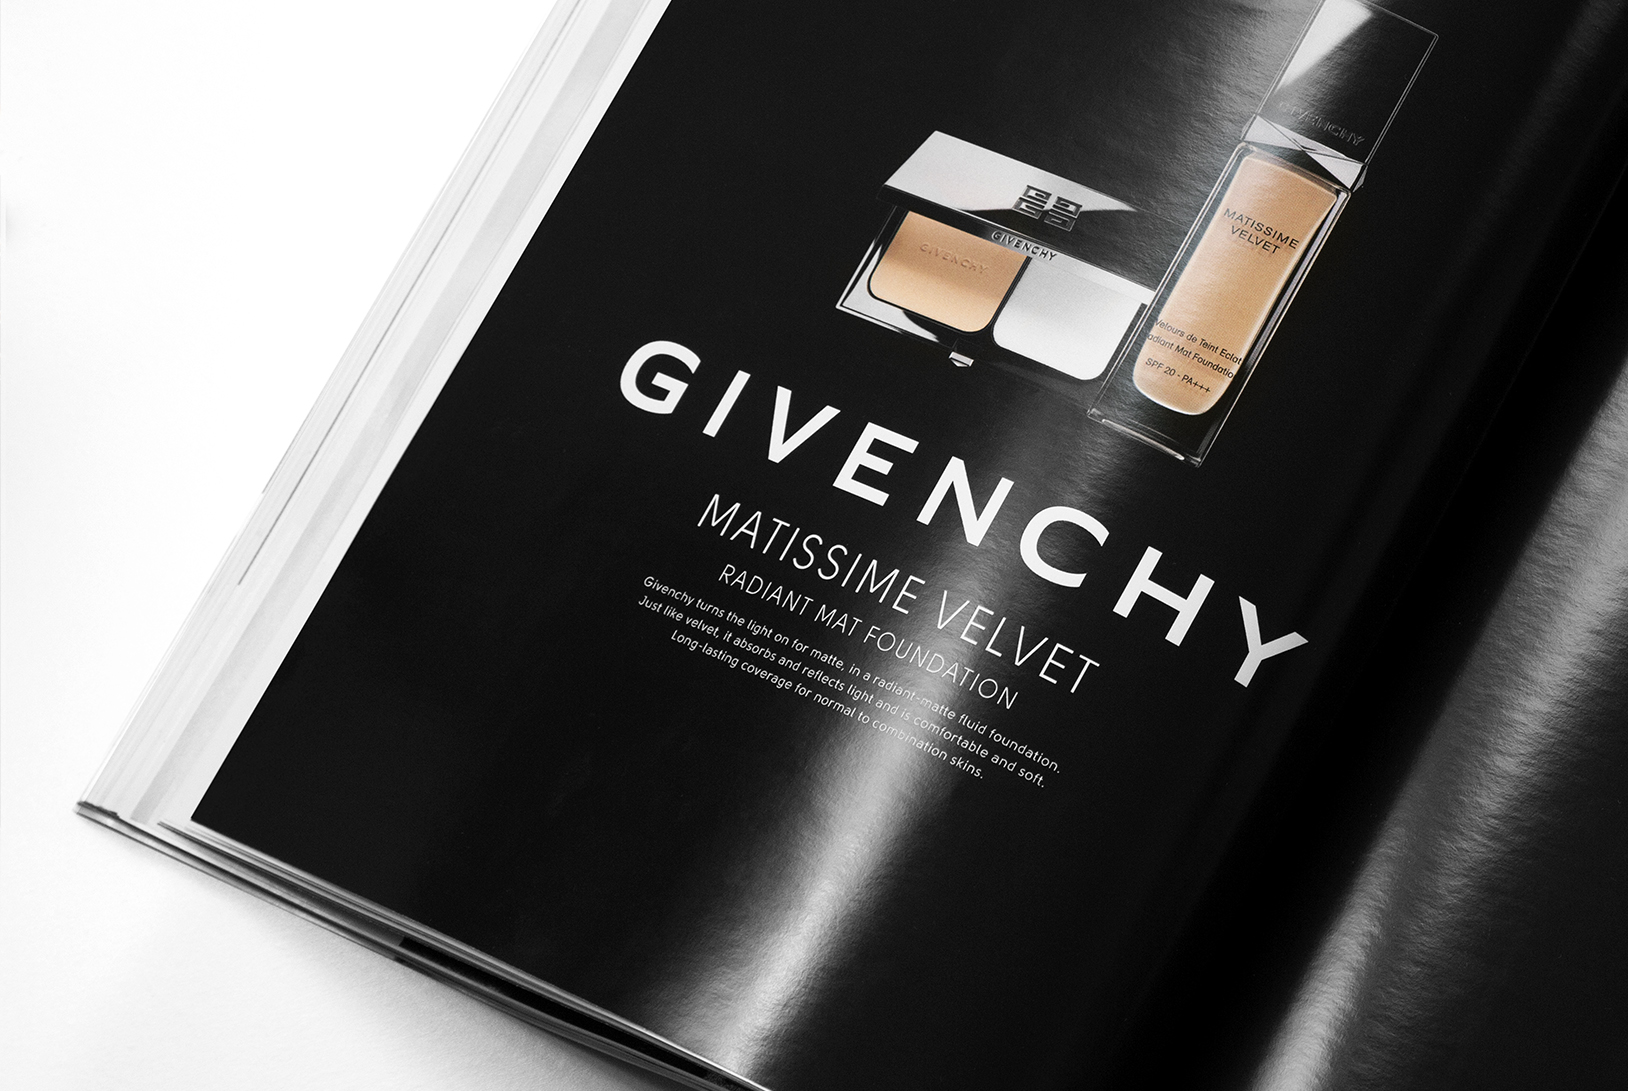 CARLA COSTE / ART DIRECTOR GIVENCHY – Foundation